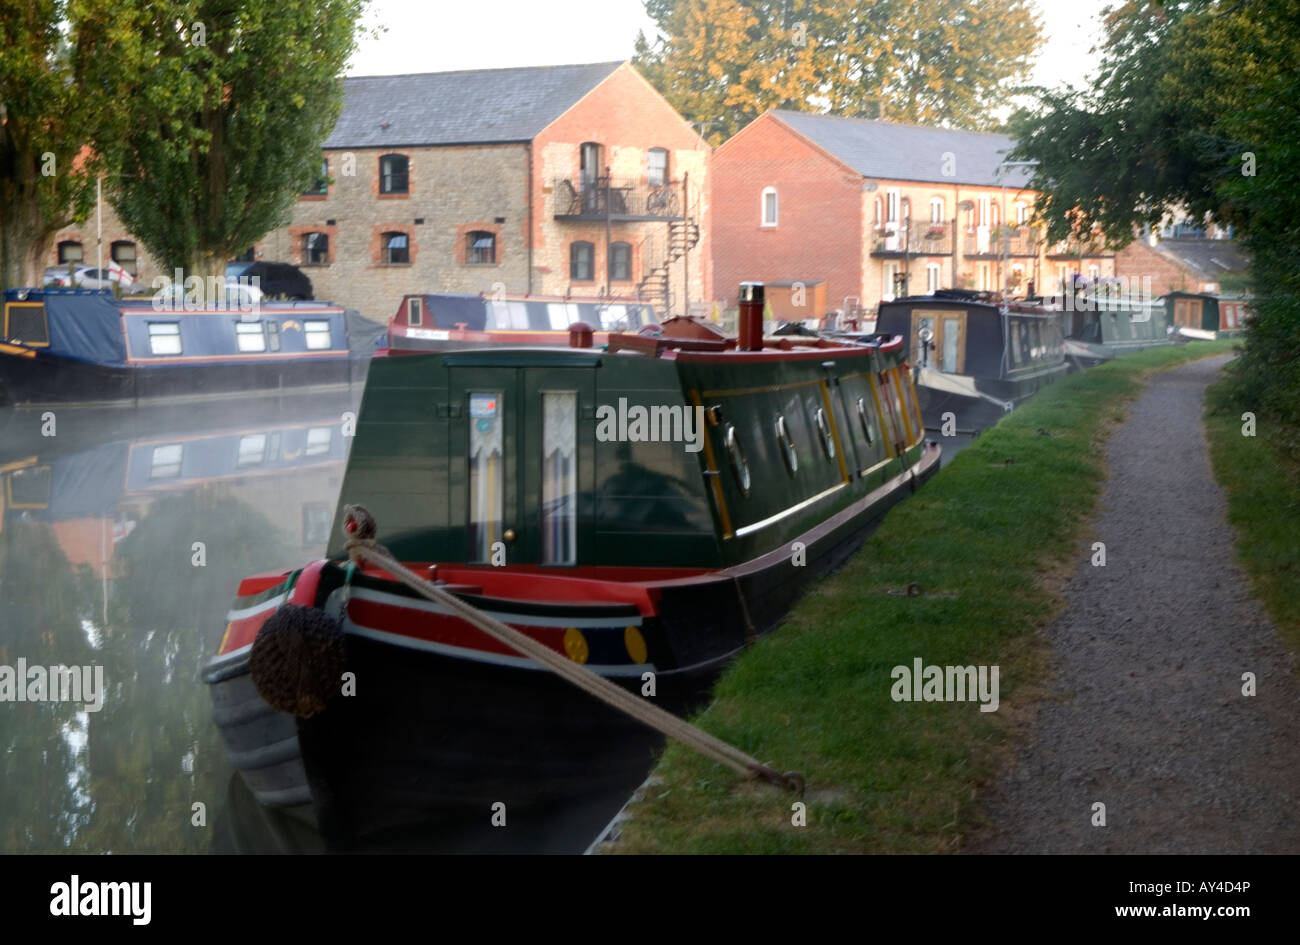 Doug Blane Narroboats morred at Cosgrove on the Grand Union canal Stock Photo